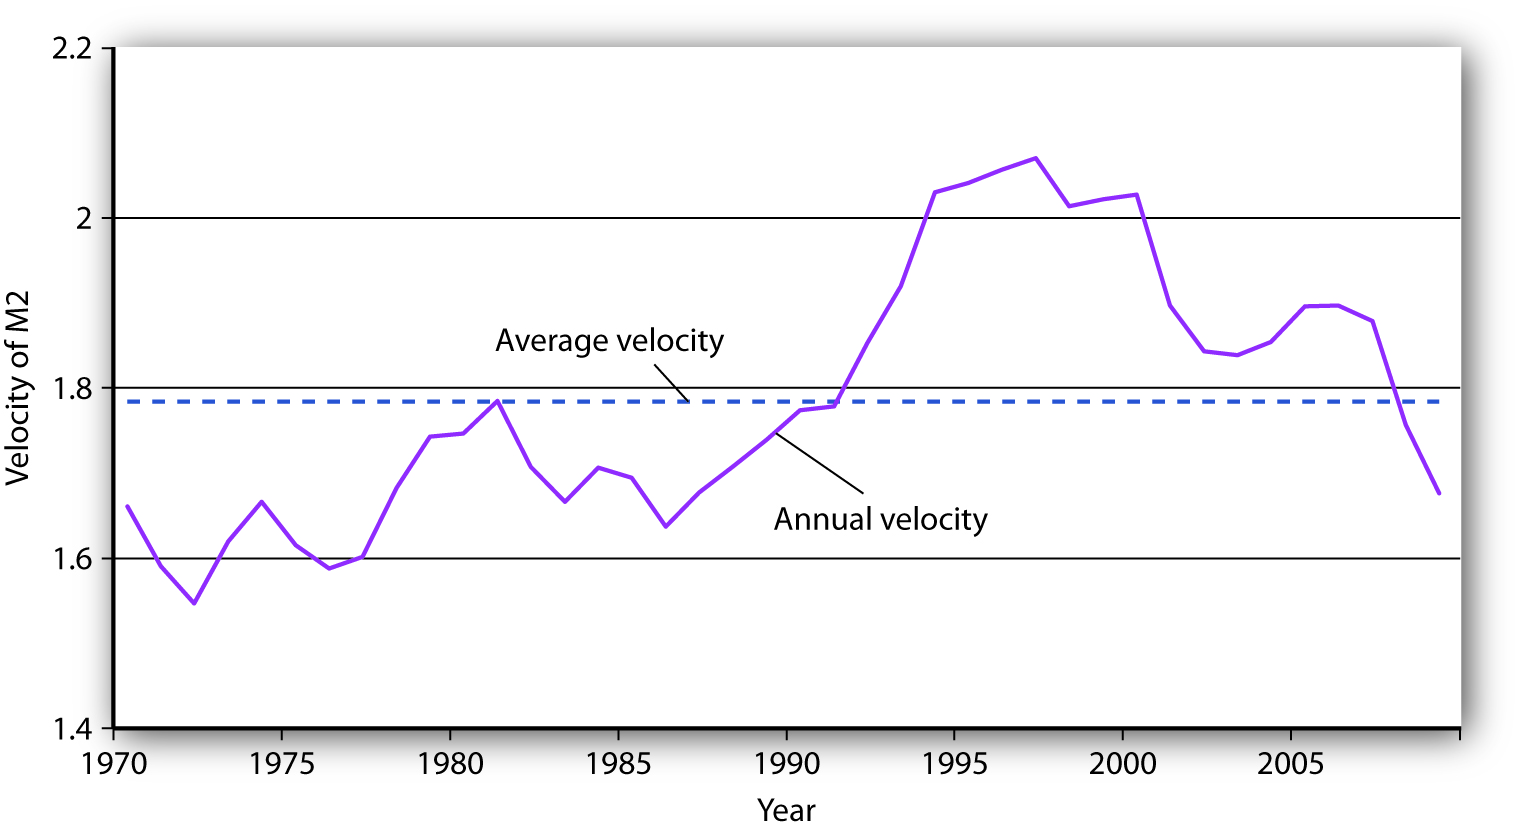 The Velocity of M2, 1970-2009. The annual velocity of M@ varied about an average of 1.78 between 1970 and 2009